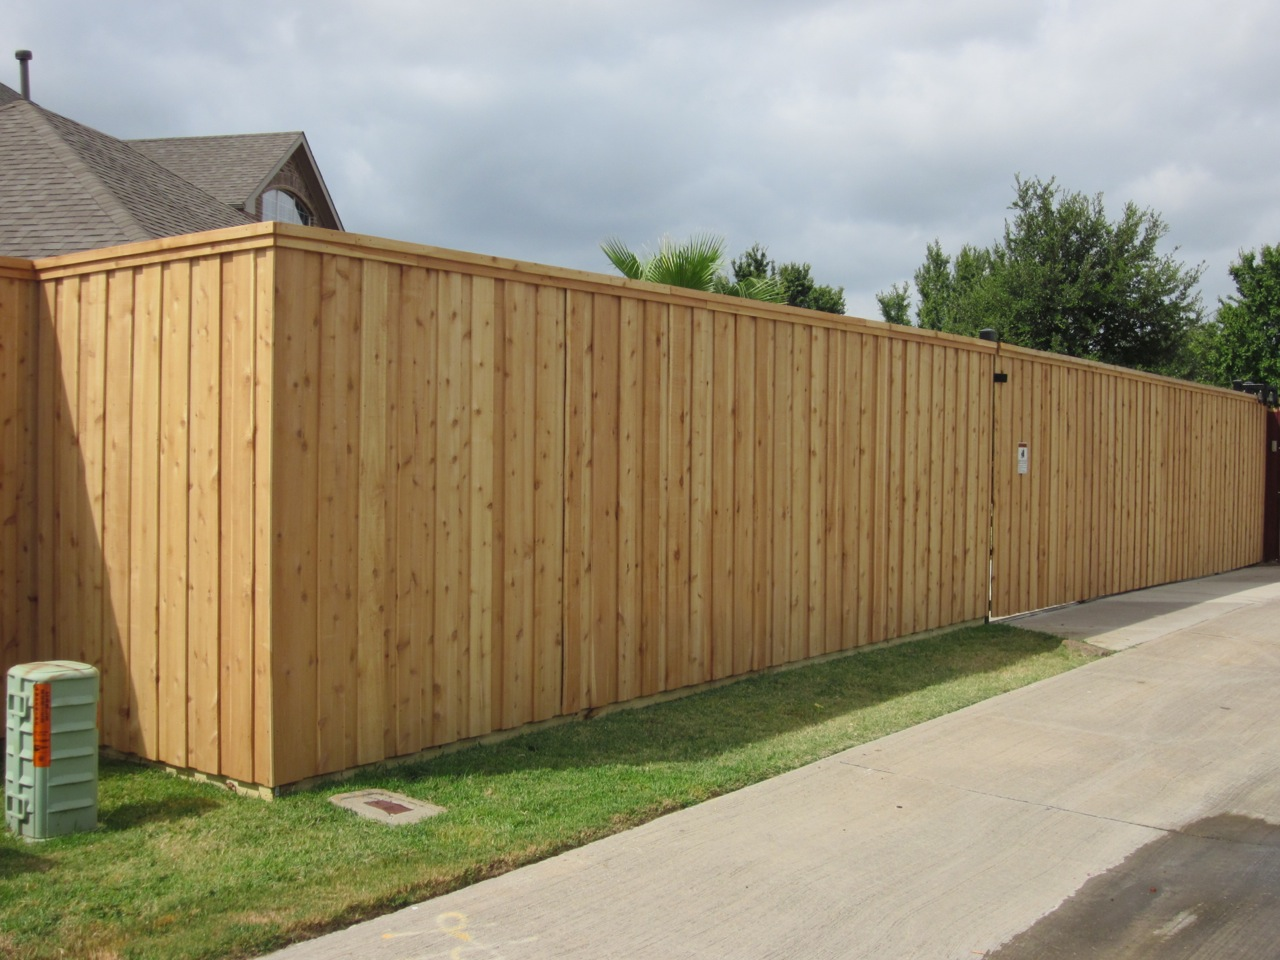 Automatic Gate Pictures Texas Best Fence